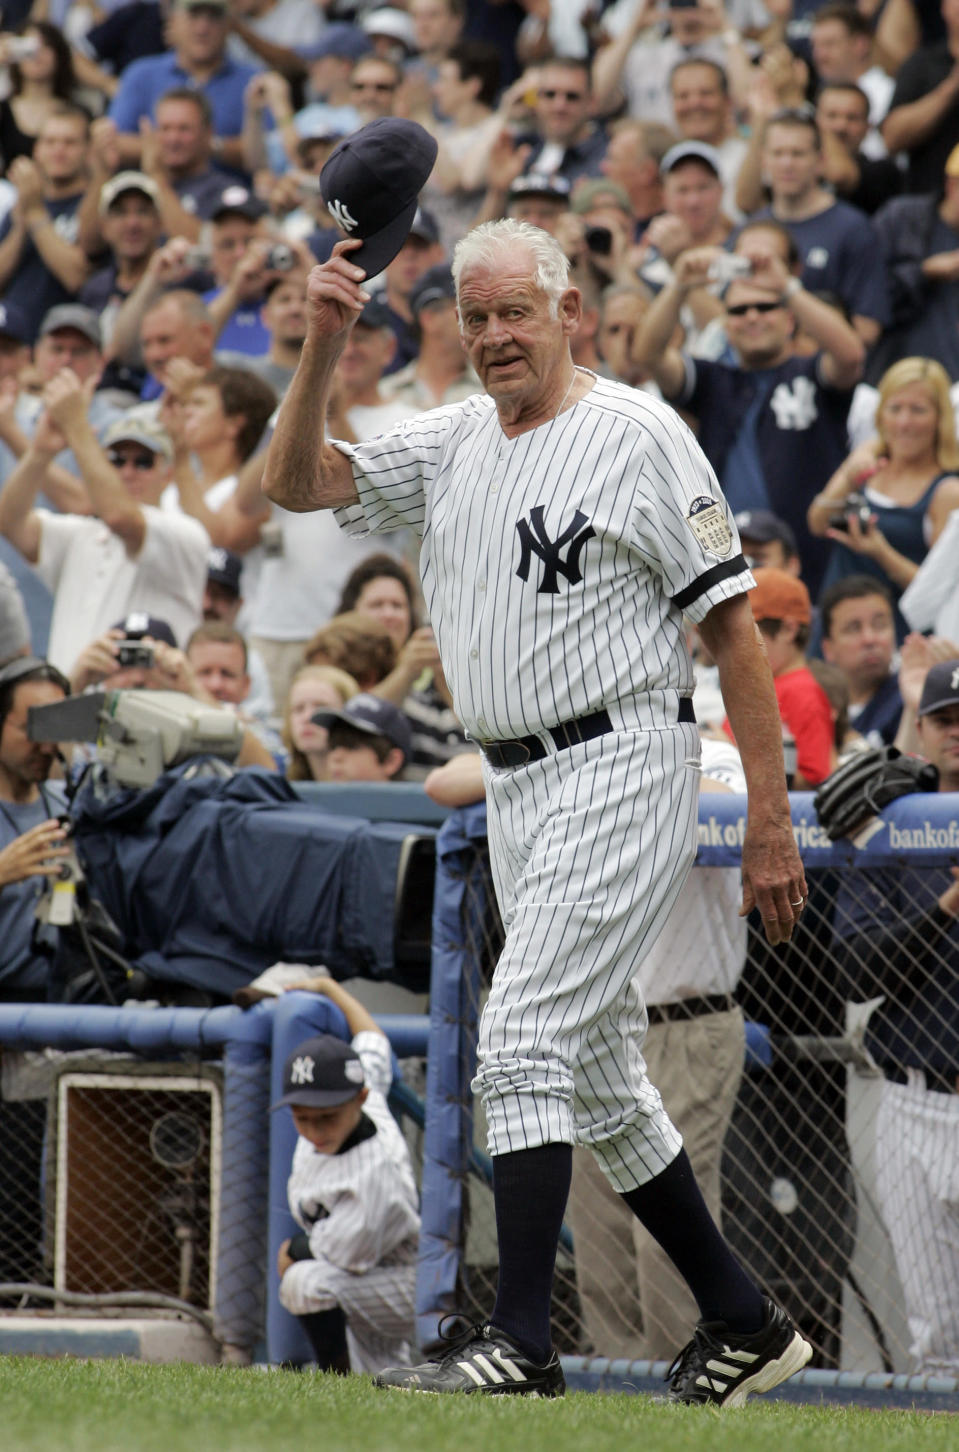 FILE - In this Aug. 2, 2008, file photo, Former New York Yankees picher Don Larsen tips his hat to fans during introduction ceremonies before an old-timers baseball game at Yankee Stadium in New York. Larsen, the journeyman pitcher who reached the heights of baseball glory in 1956 for the Yankees when he threw a perfect game and the only no-hitter in World Series history, died Wednesday night, Jan. 1, 2020. He was 90. (AP Photo/Ed Betz, File)